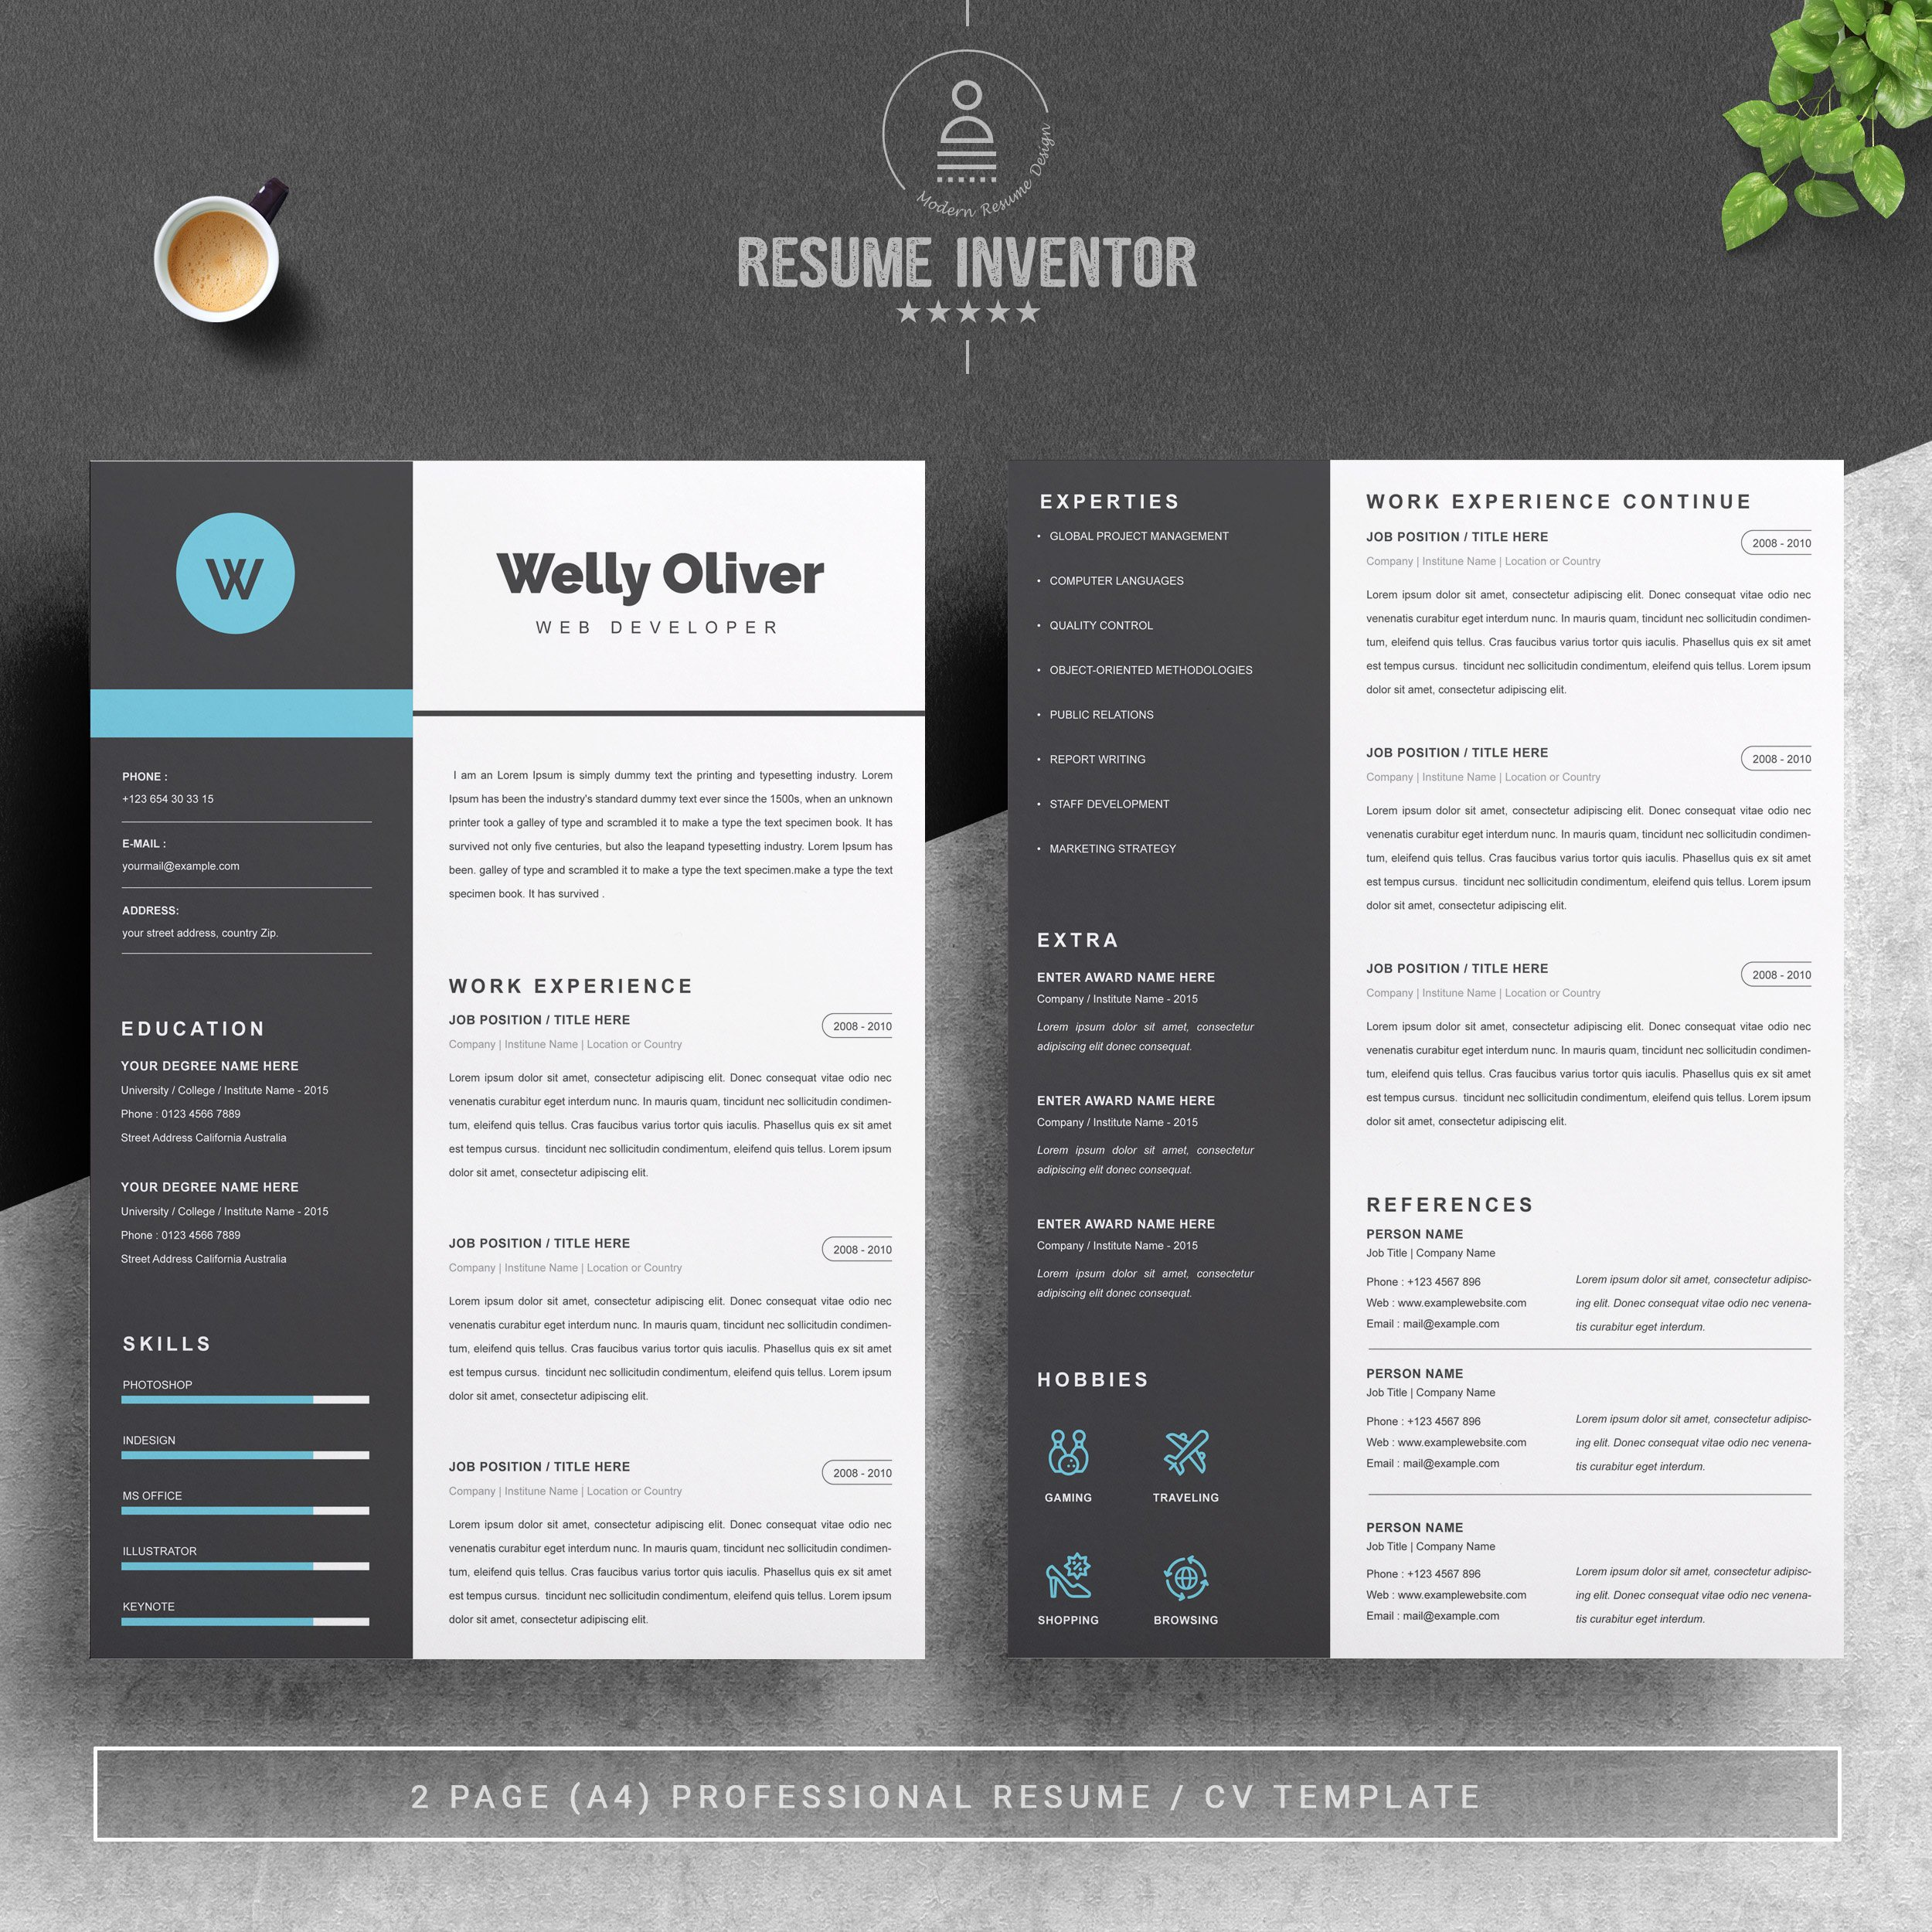 Dribbble 02 2 Pages Free Resume Design Template Jpg By Resume